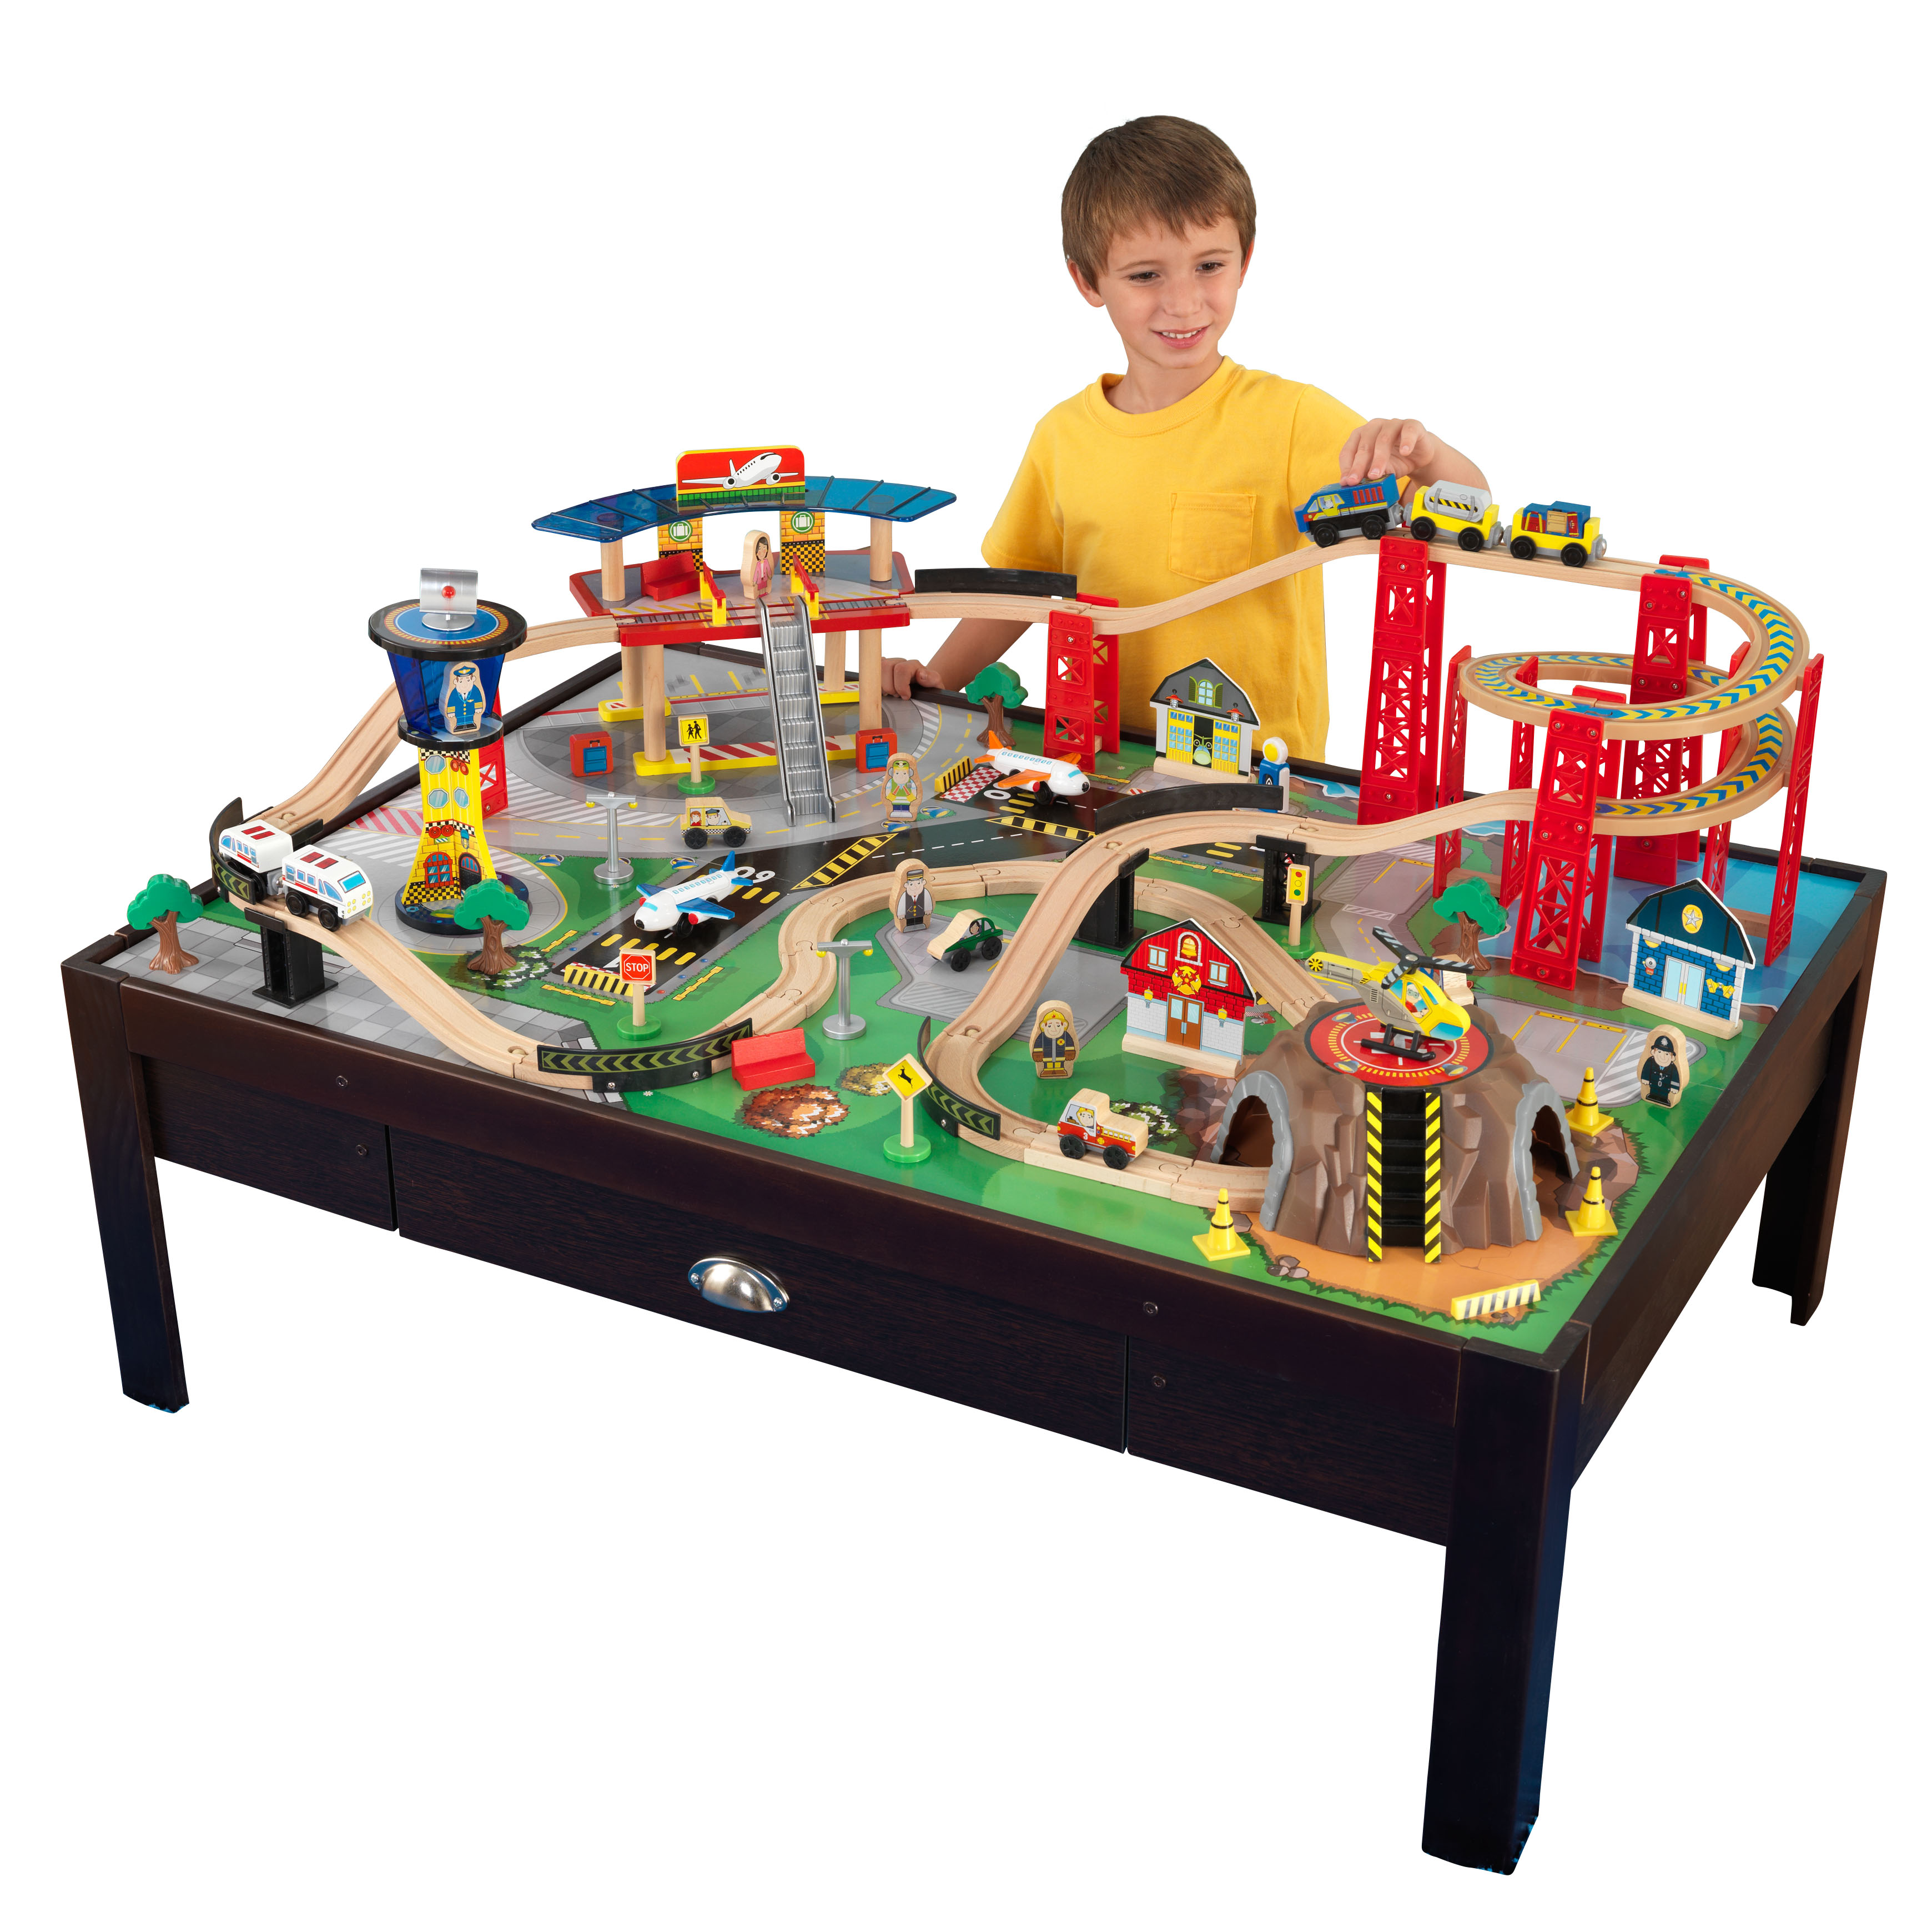 KidKraft Airport Express Train Set & Table - 91 accessories included